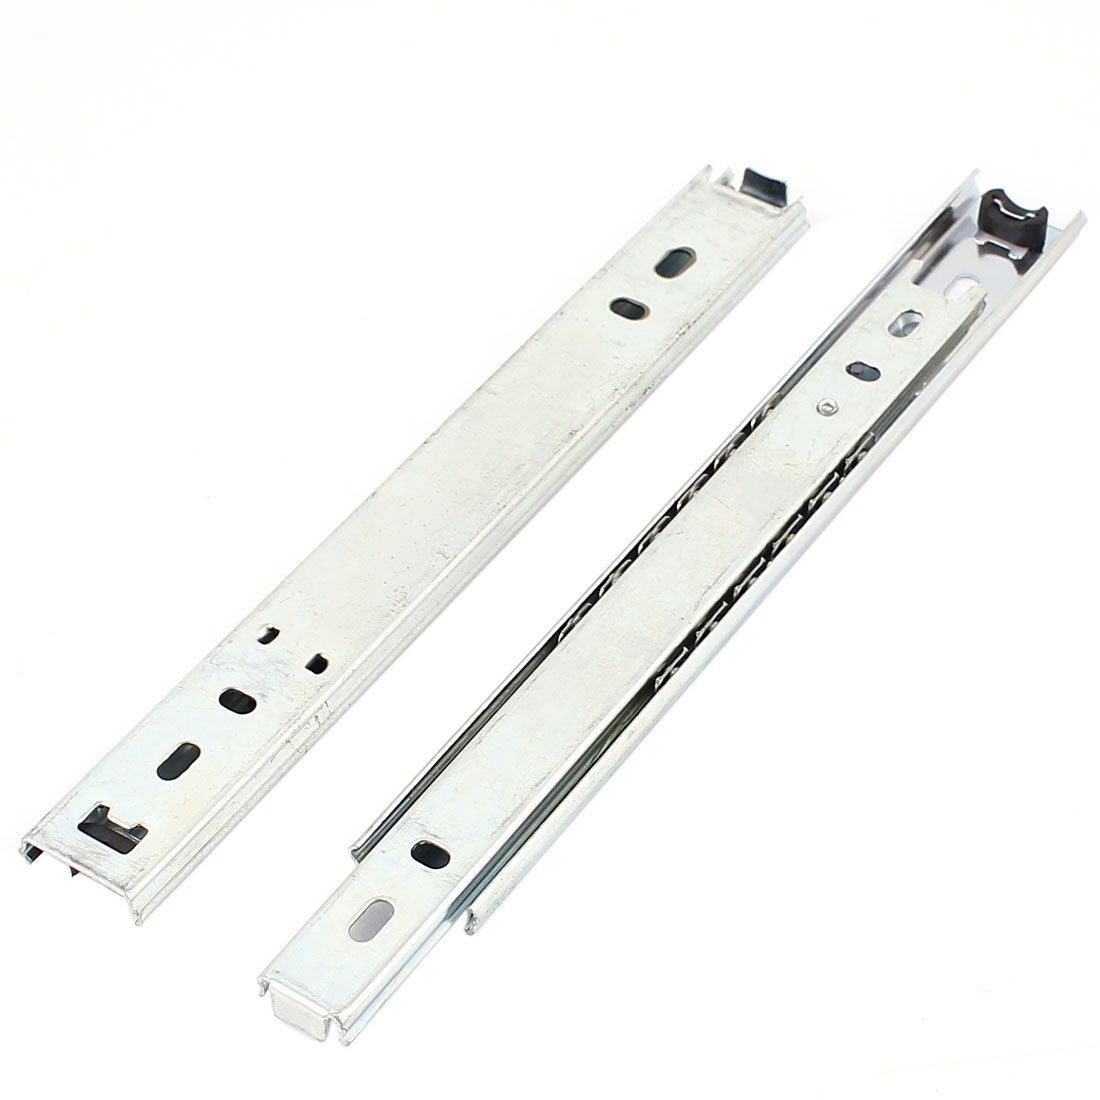 "2 Pcs 8"" Long Ball Bearing Telescopic Furniture Cabinet Drawer Slides"